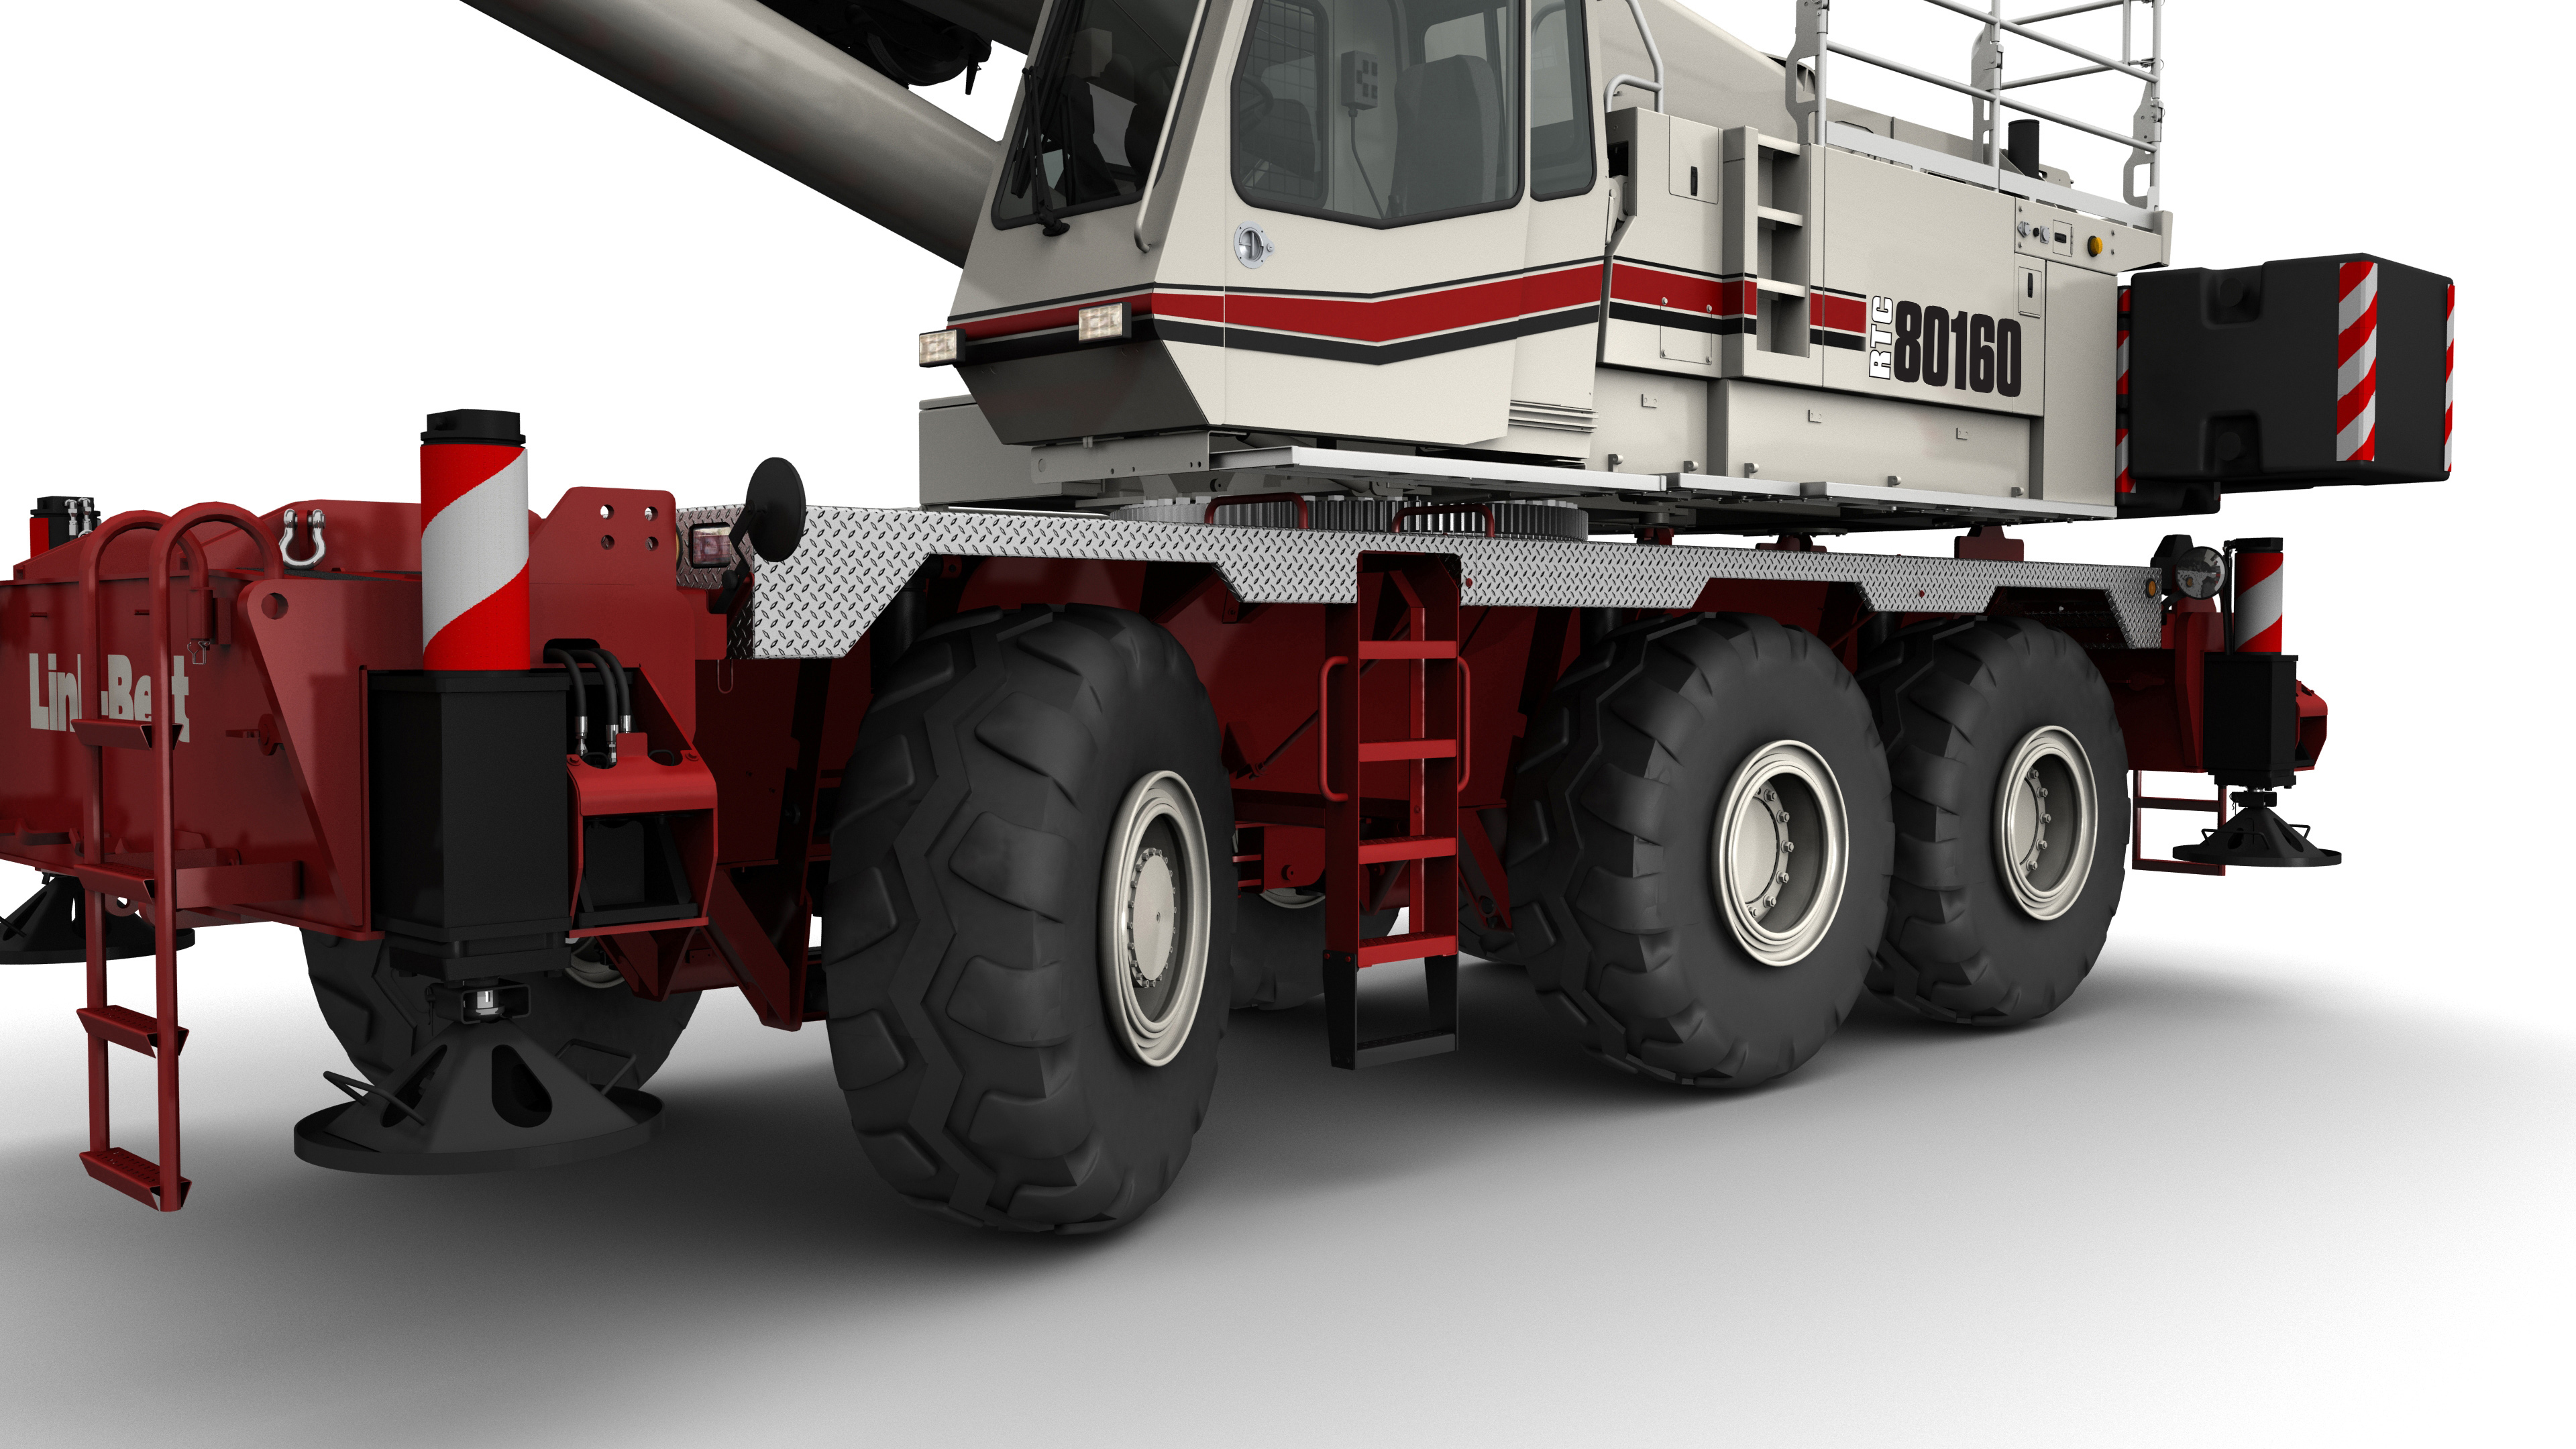 Link-Belt-RTC-80160-Series-II-Rough Terrain-Crane